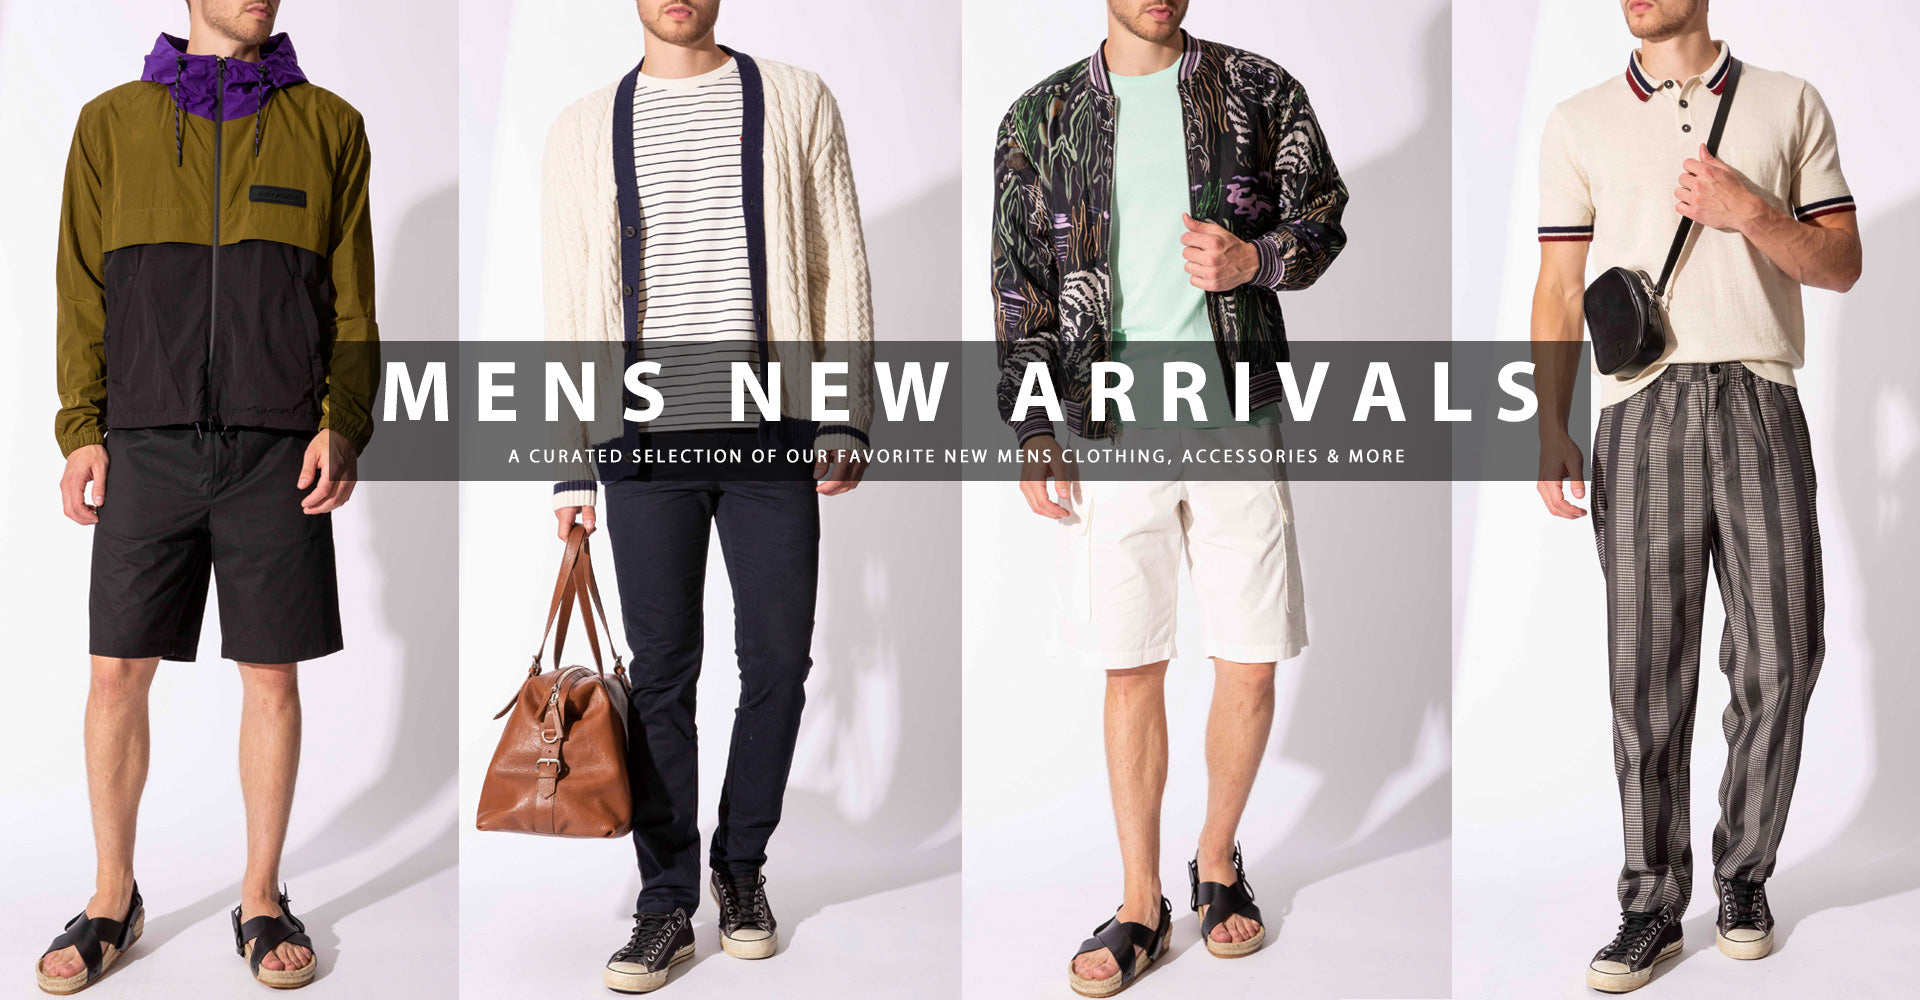 Mens New Arrivals Shop Our Curated Selection of Our Favorite New Mens Clothing, Accessories & More Shop Our Curated Selection of Our Favorite New Mens Clothing, Accessories & More